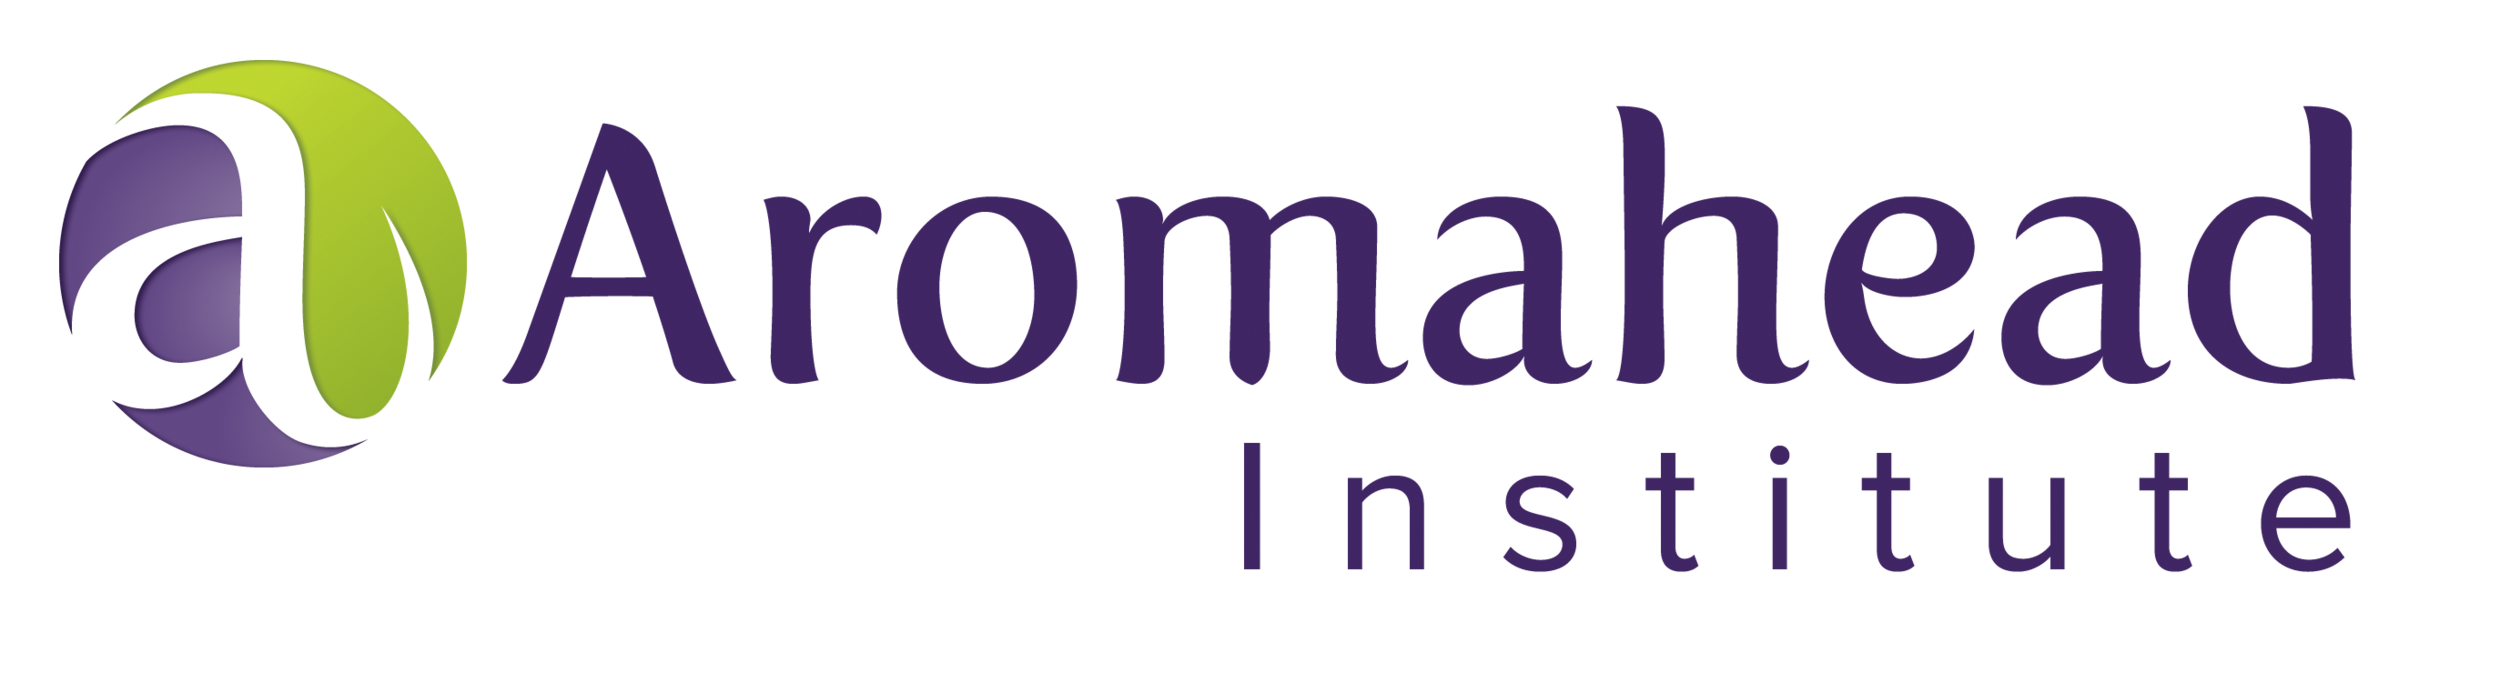 """Aromahead Institute School of Essential Oil Studies   - If you're curious about essential oil education, you're invited to a   free webinar  . It's called """"Master The Art and Science Of Essential Oils,"""" and is being taught by Andrea Butje, founder of Aromahead Institute. On the webinar, Andrea will explain what Aromatherapy Certification means, and how education can enhance your work with essential oils. You can sign up at  aromahead.com/webinar ."""